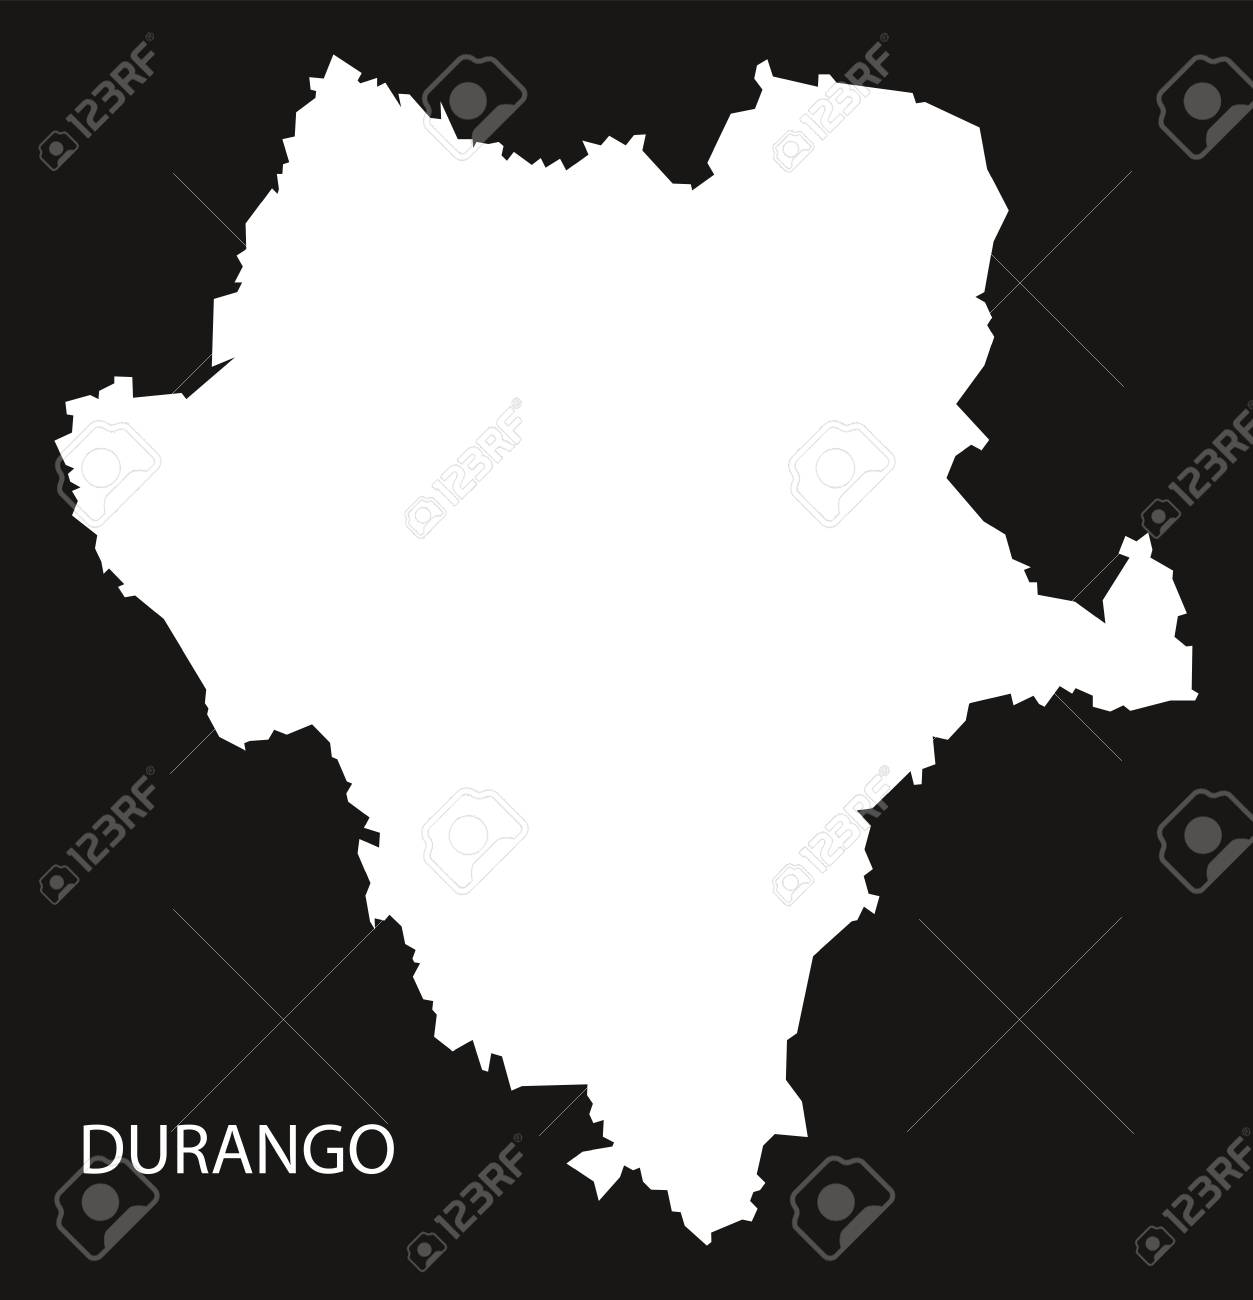 Durango Mexico Map Black Inverted Silhouette Royalty Free Cliparts on